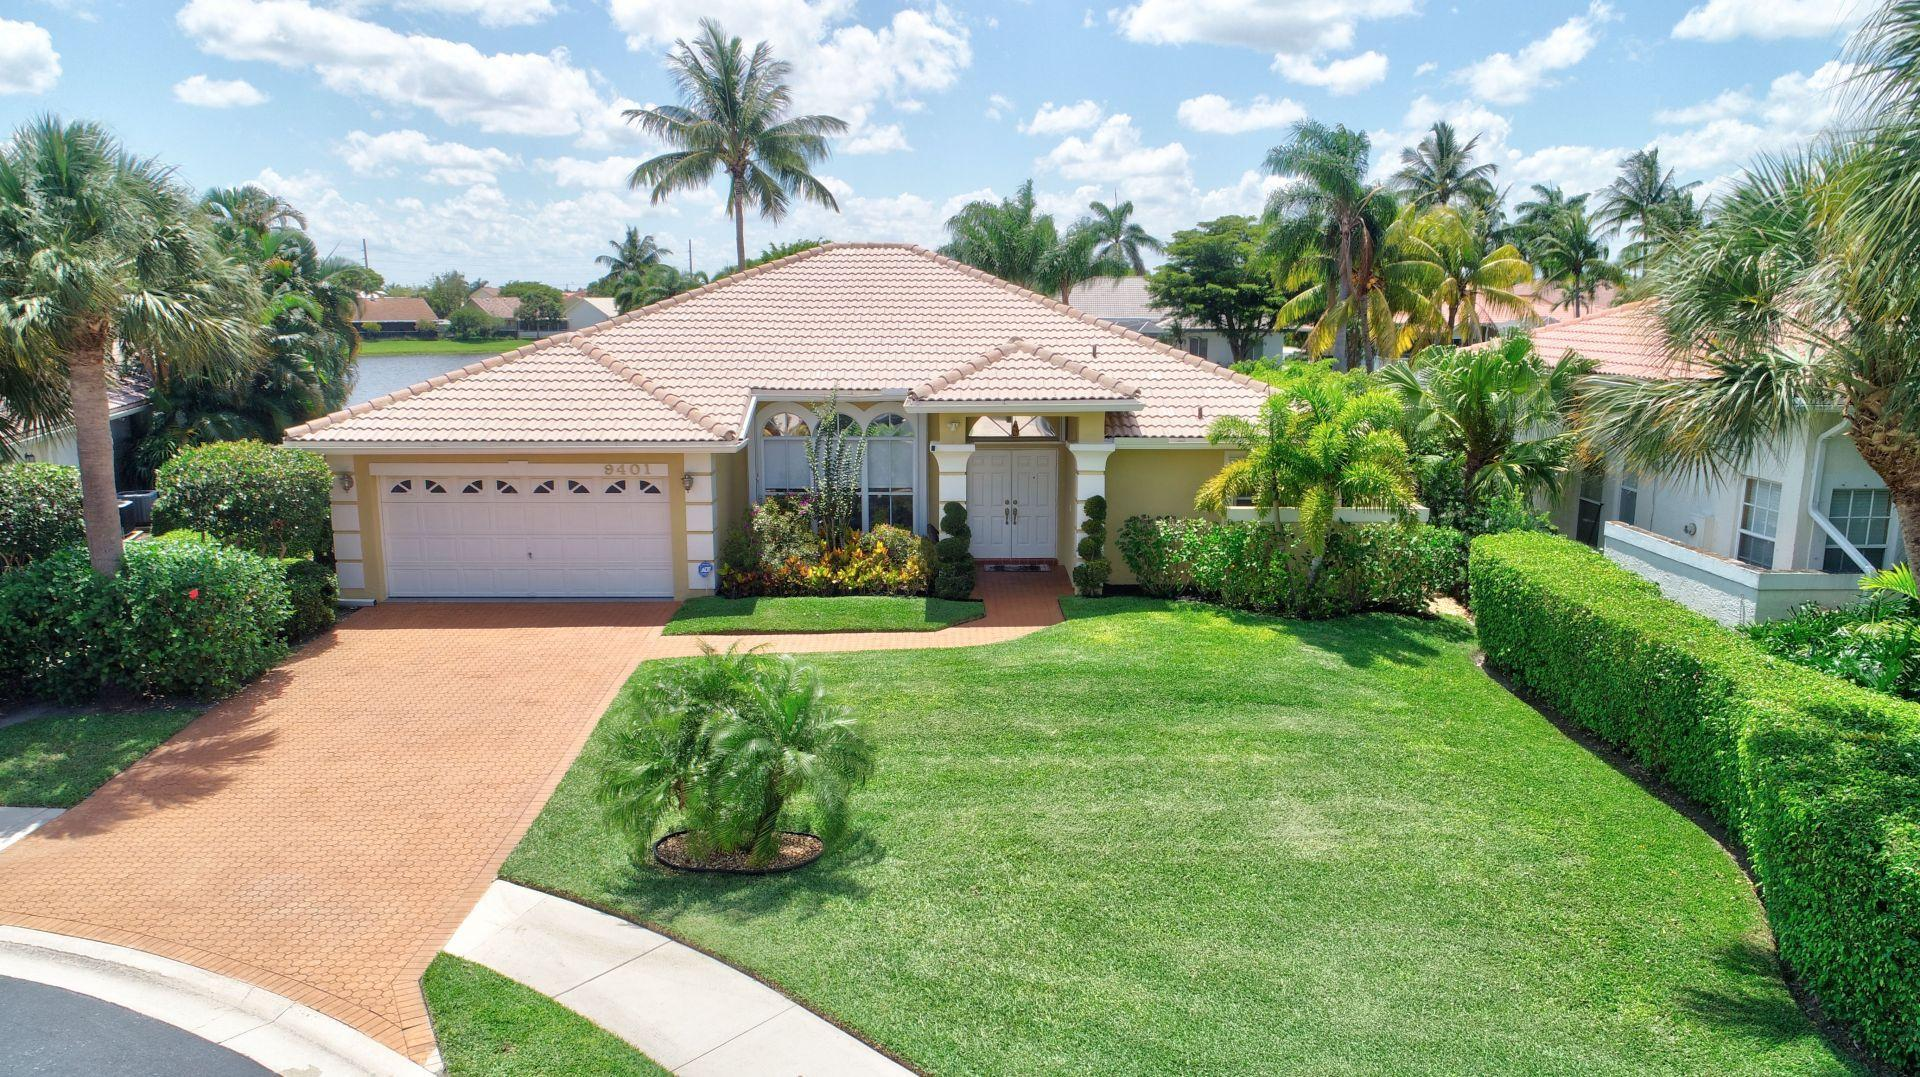 Home for sale in Boynton Waters Boynton Beach Florida